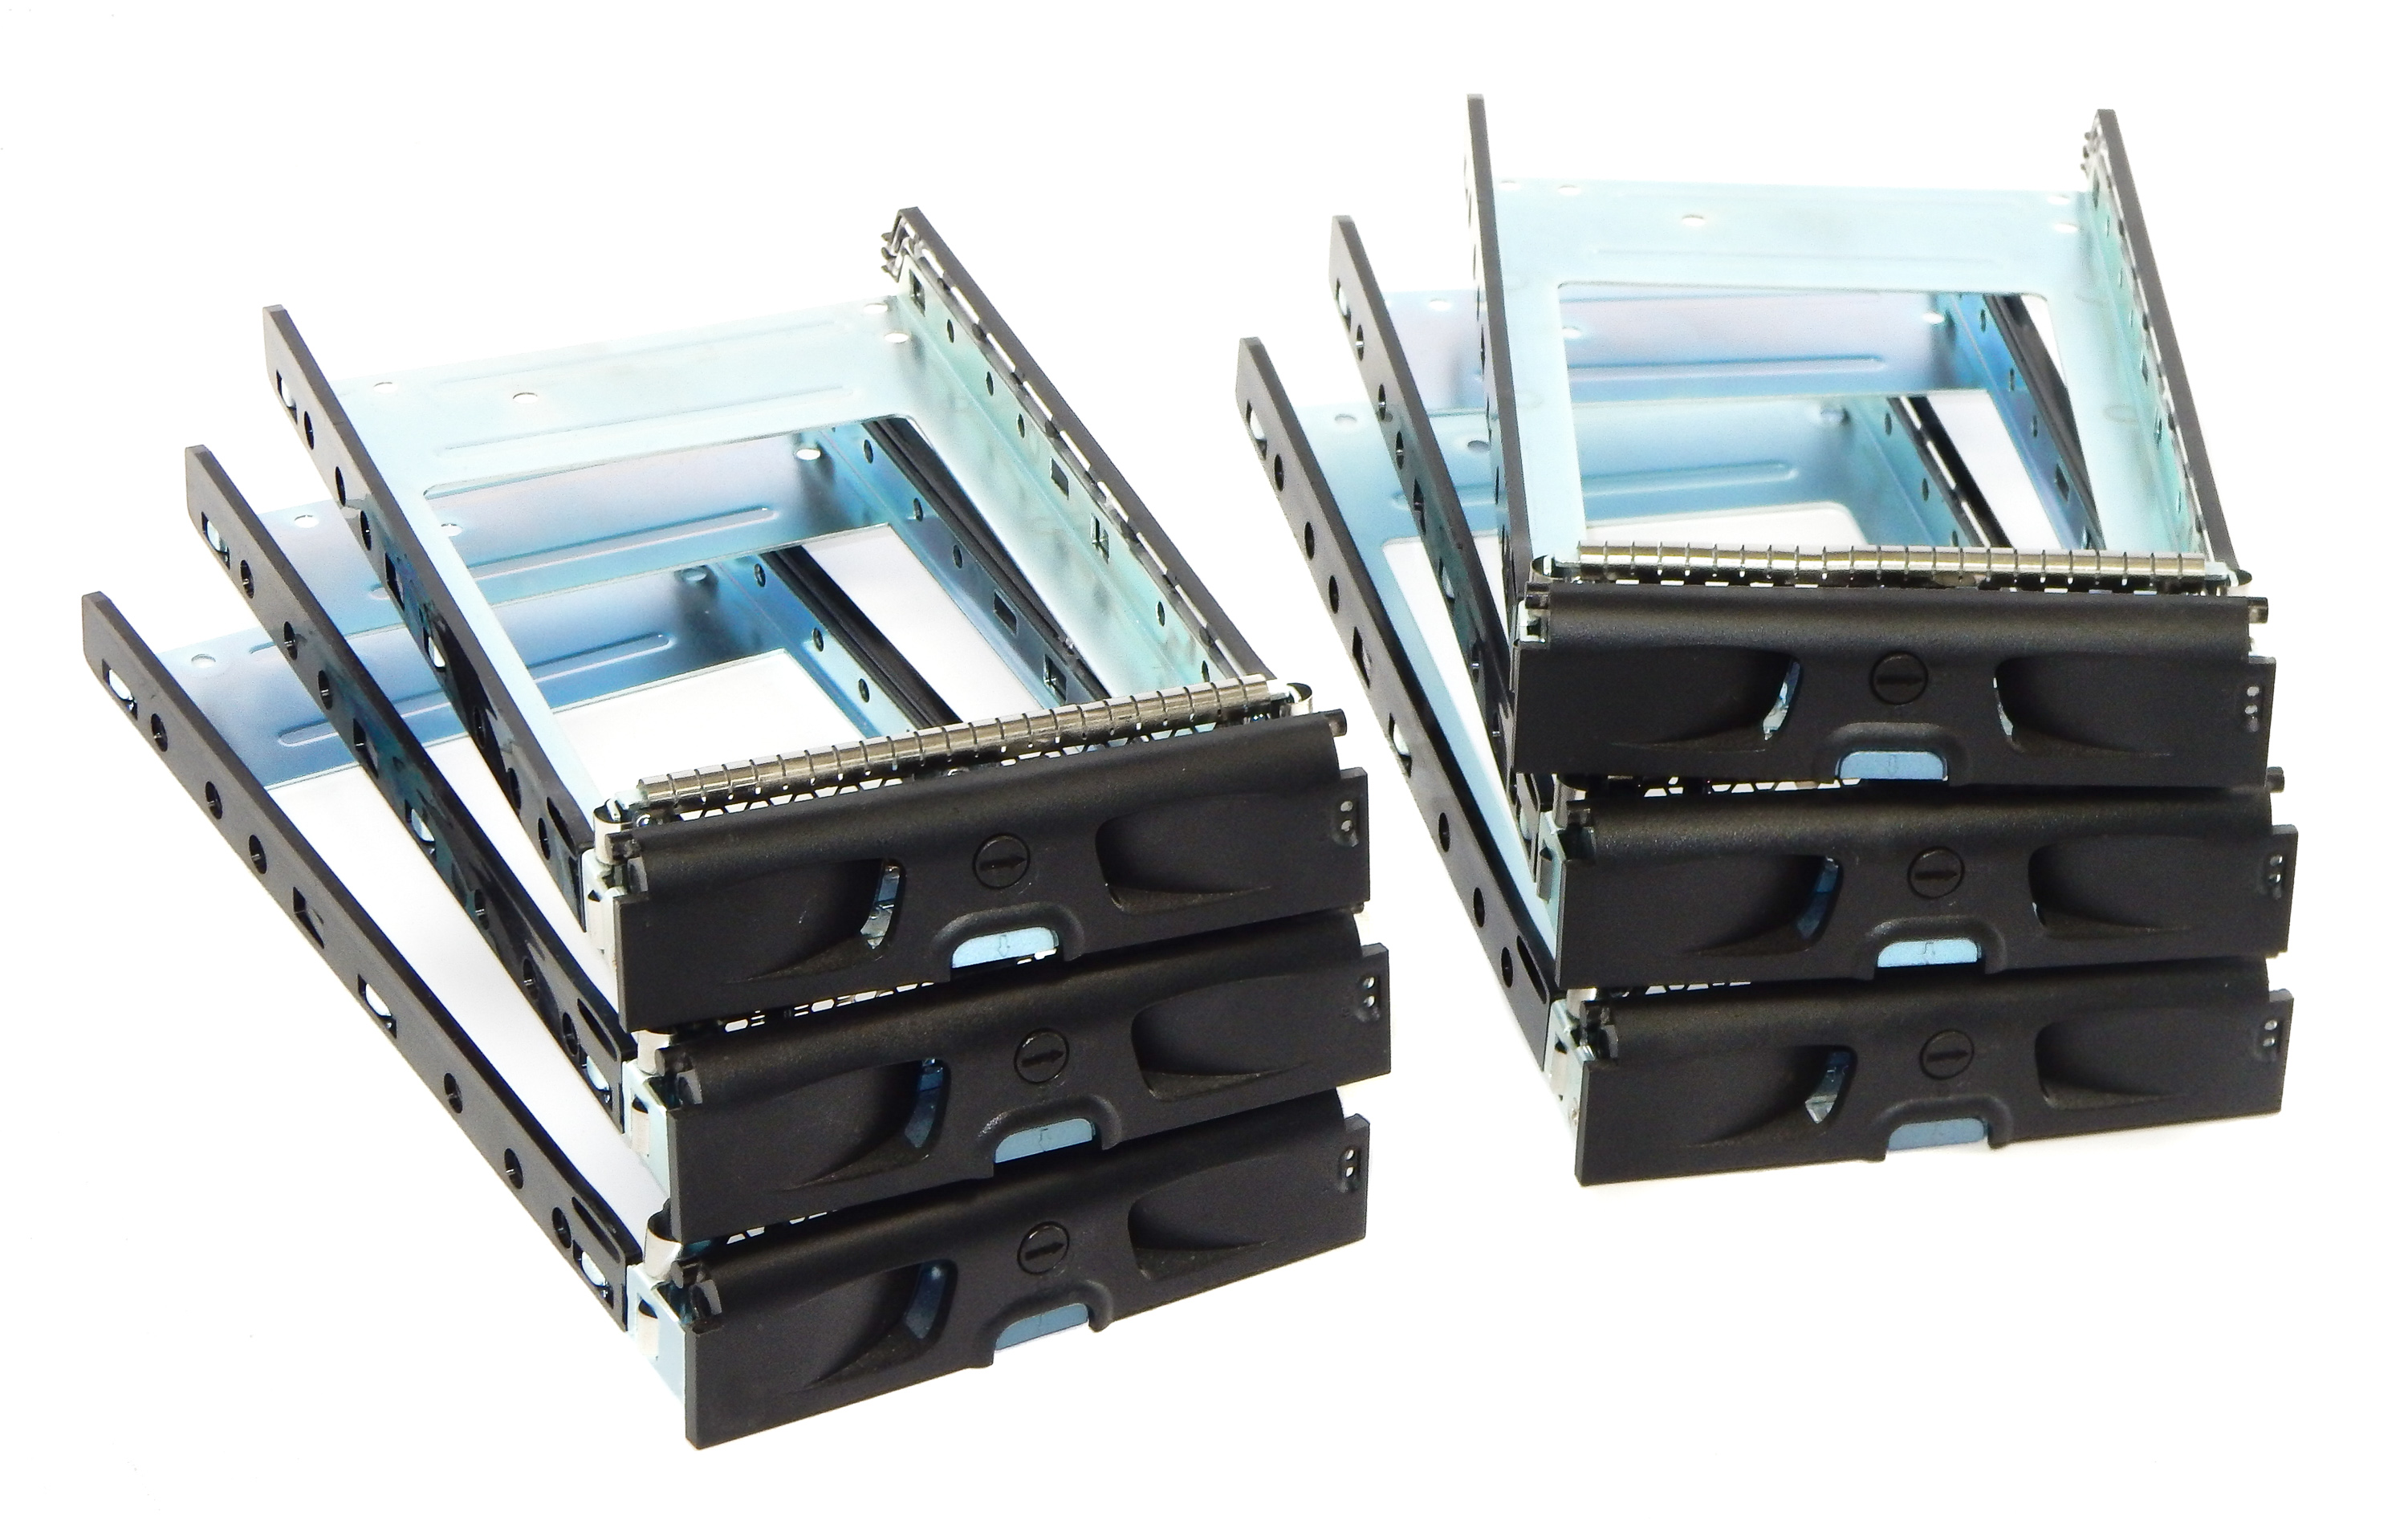 """6x 3.5"""" Hard Drive HDD Caddy For Infortrend A24F-R2430 Server"""